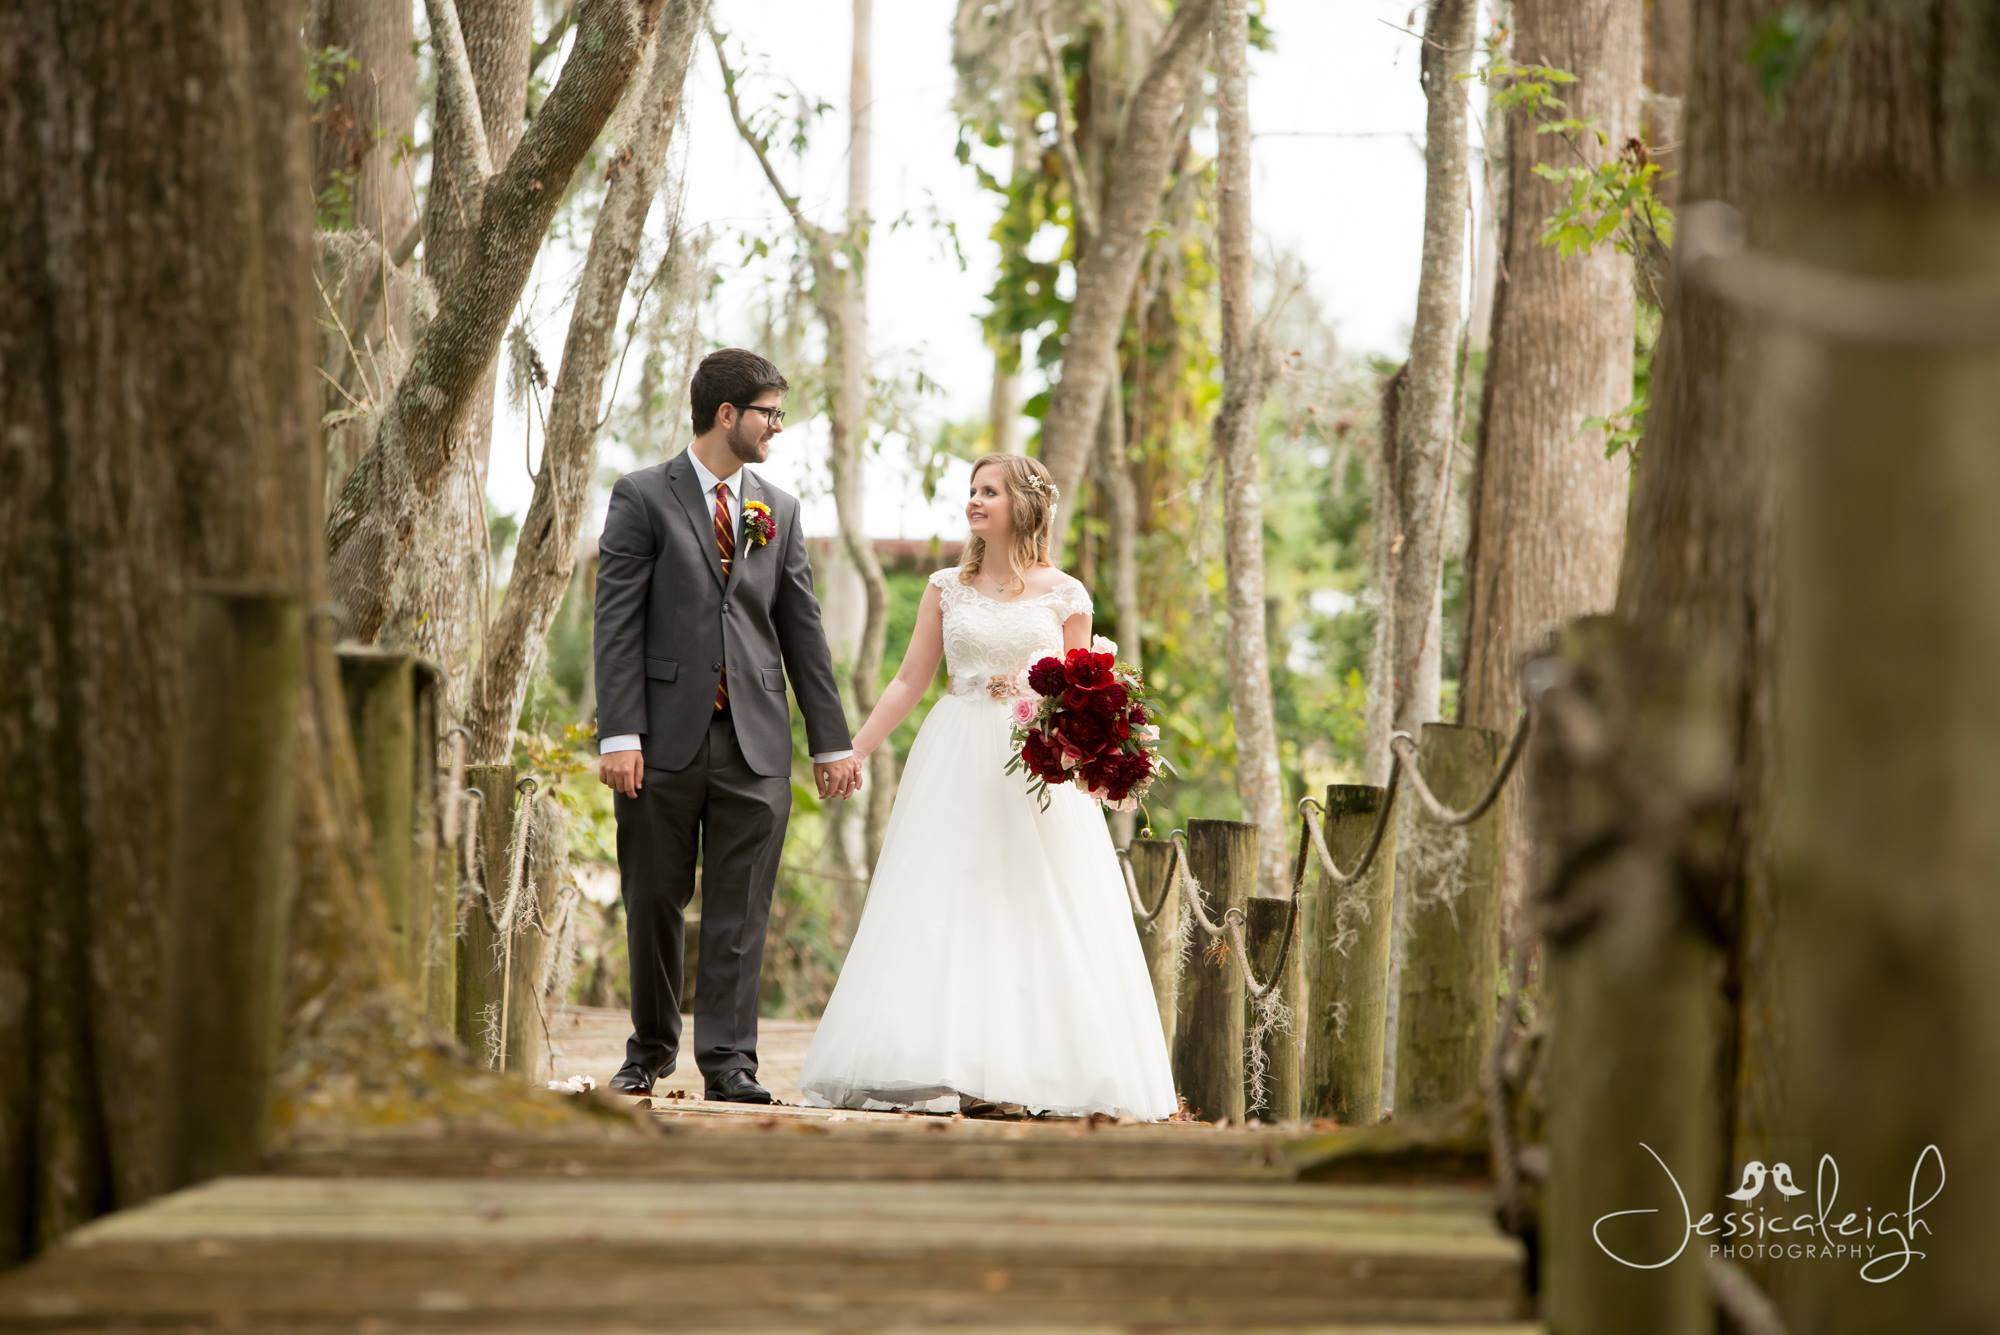 Bride carrying red flowers holding grooms hand while walking on a boardwalk